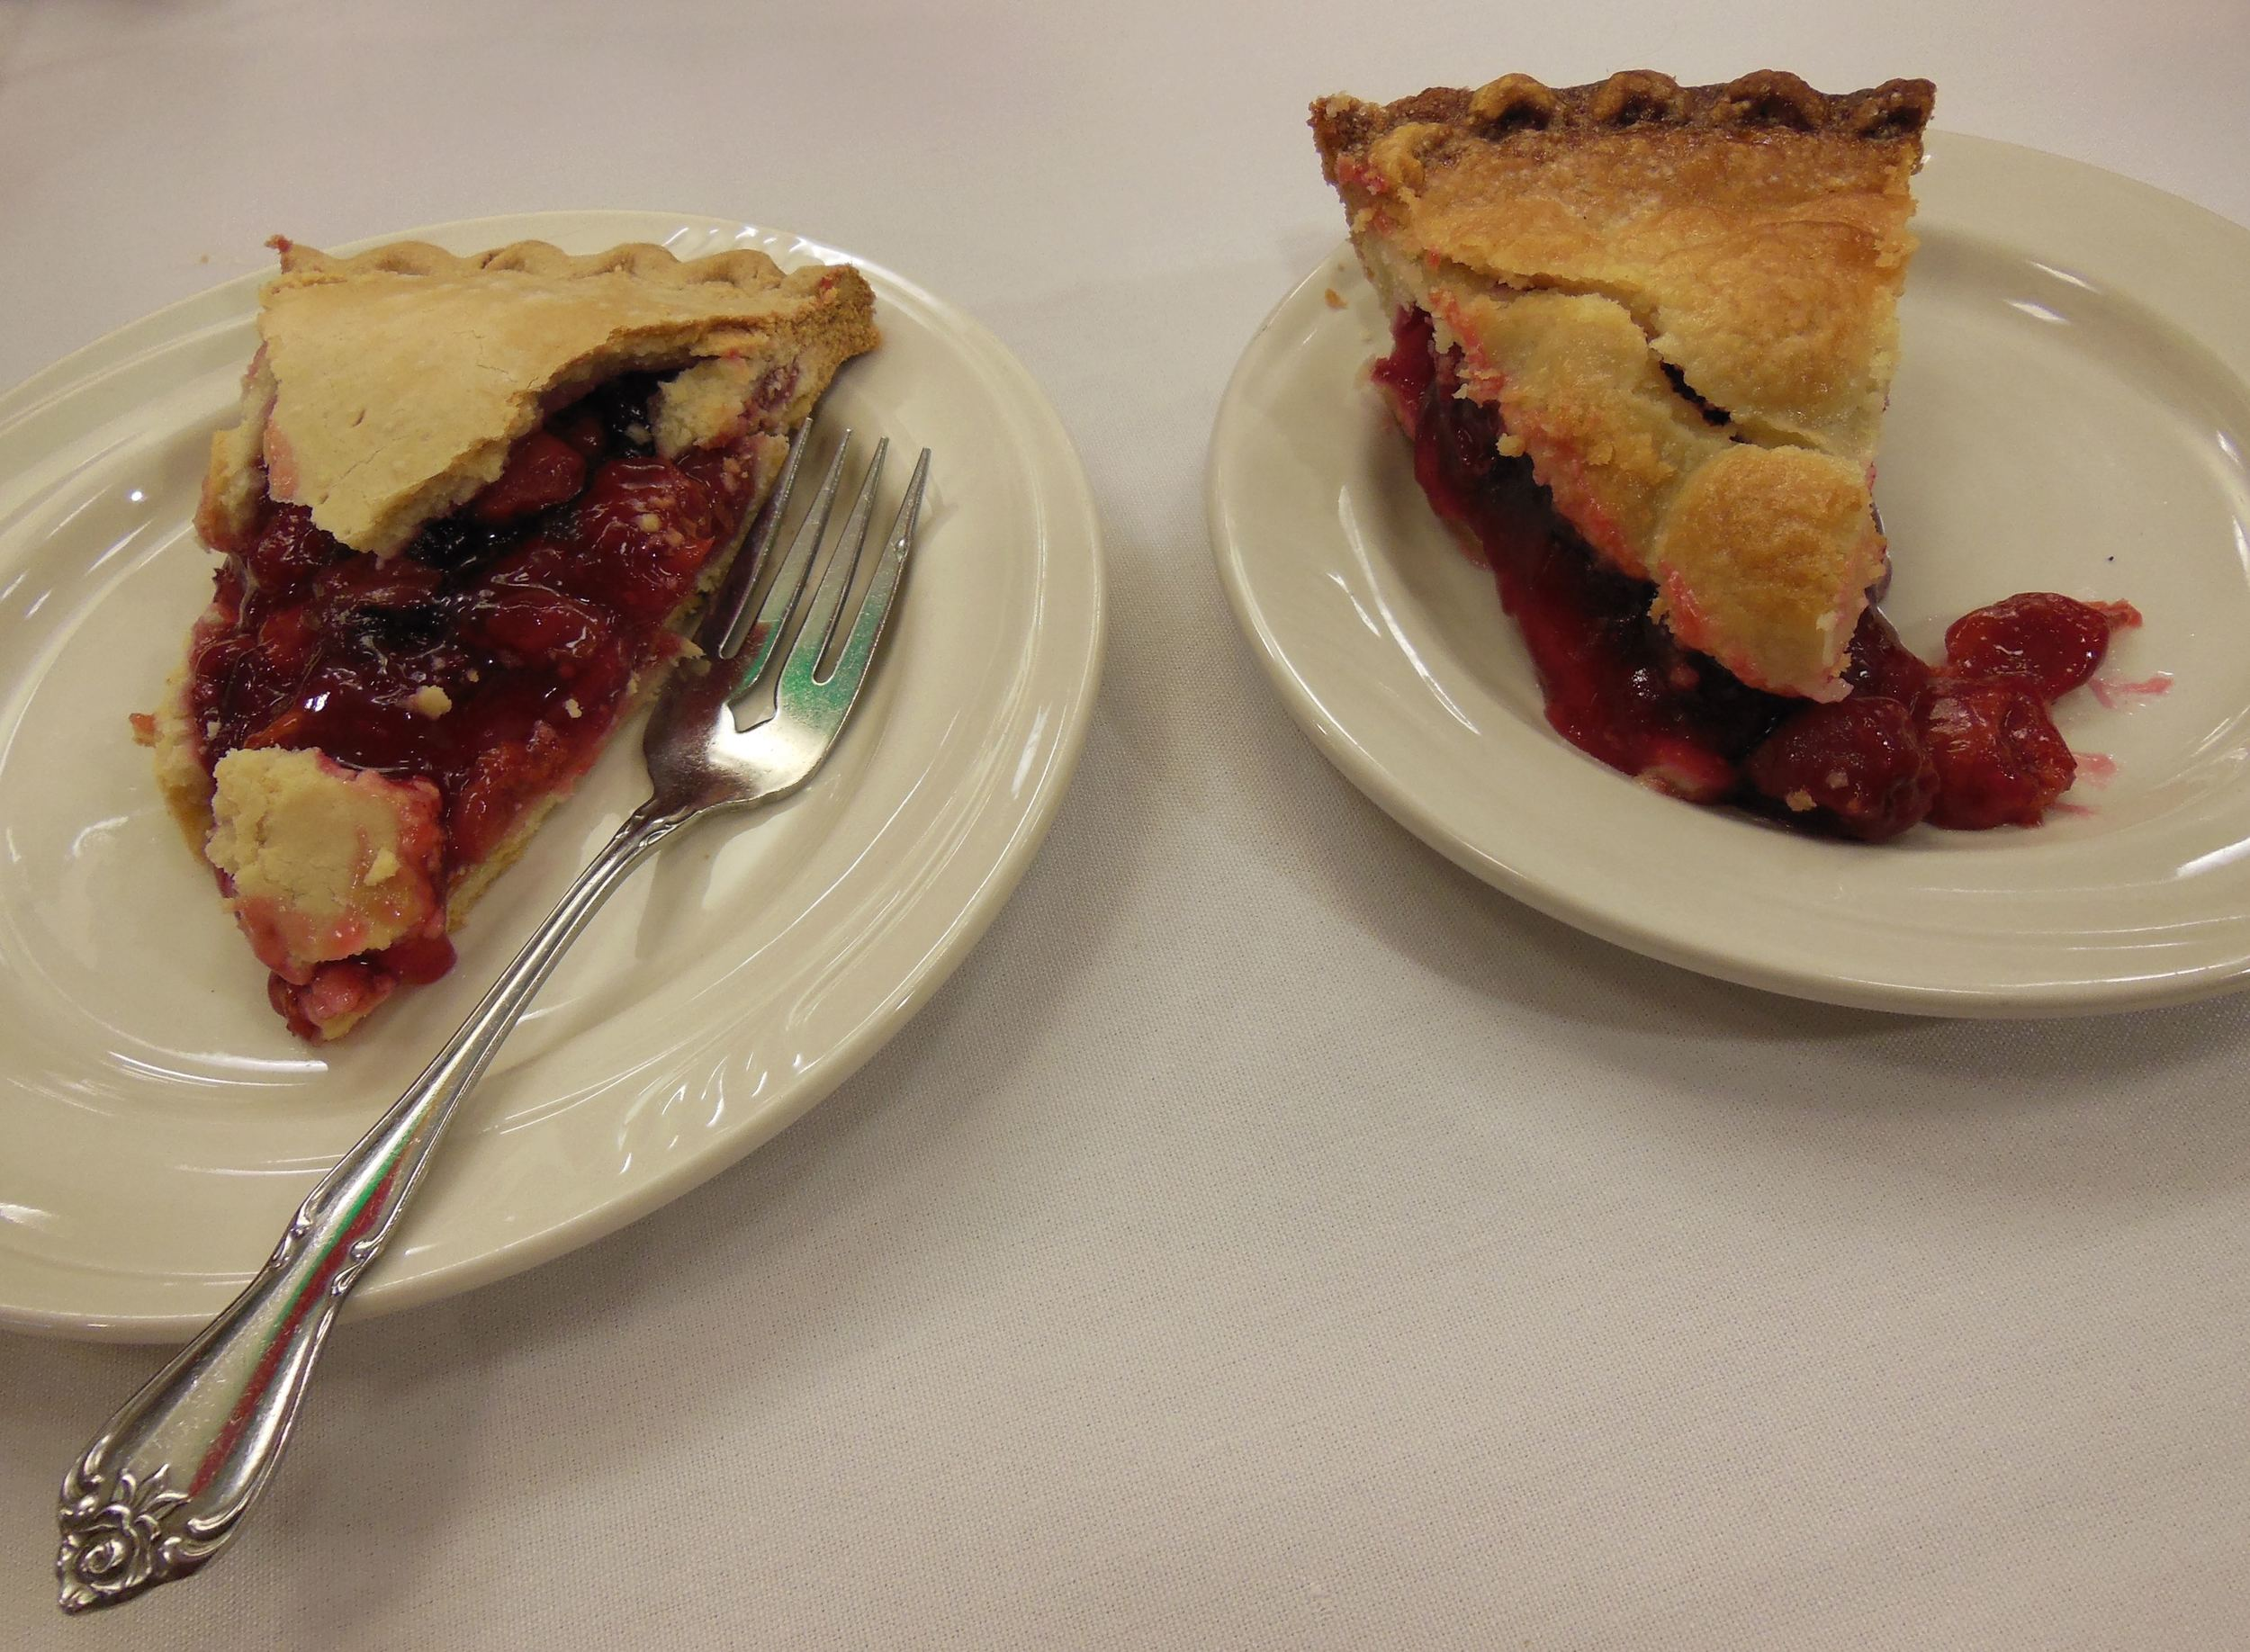 We tested these two cherry pies: sugar free on the left, regular cherry pie on the right.